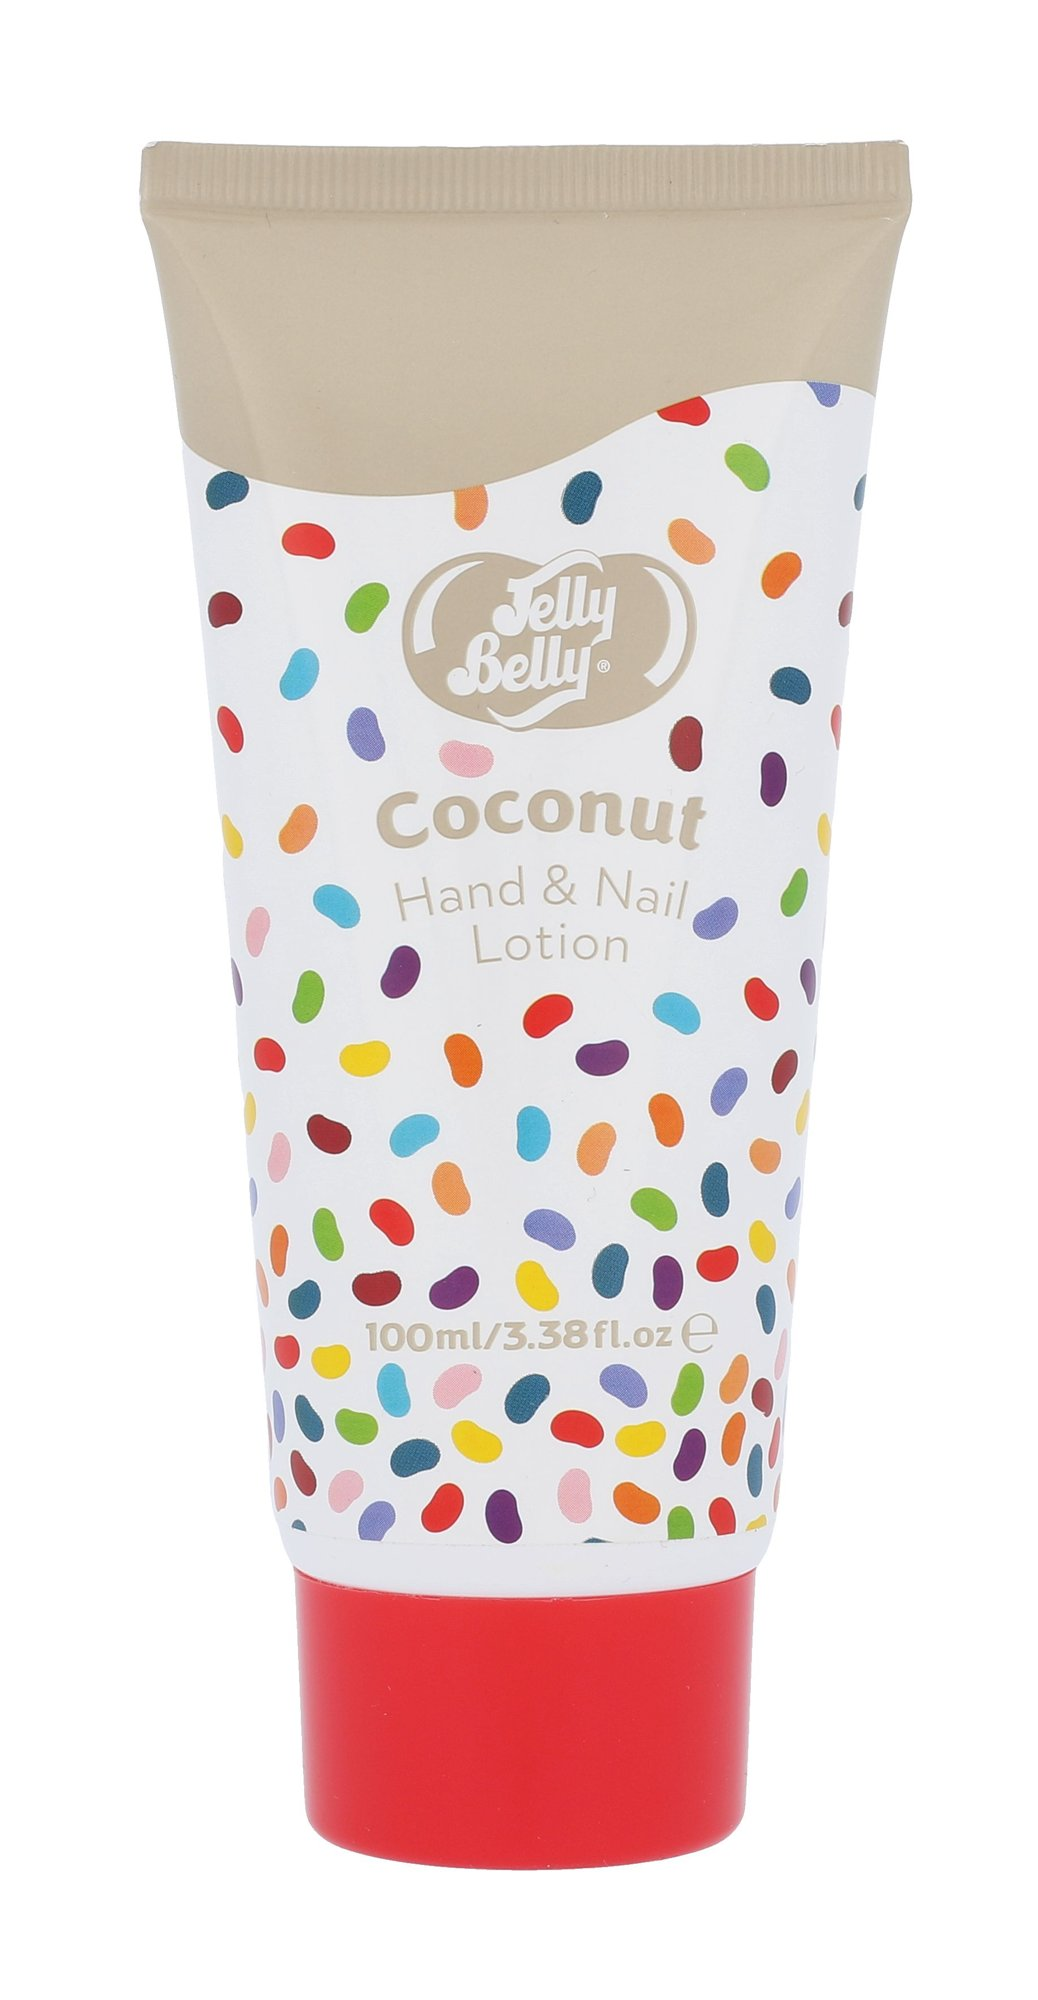 Jelly Belly Coconut Cosmetic 100ml